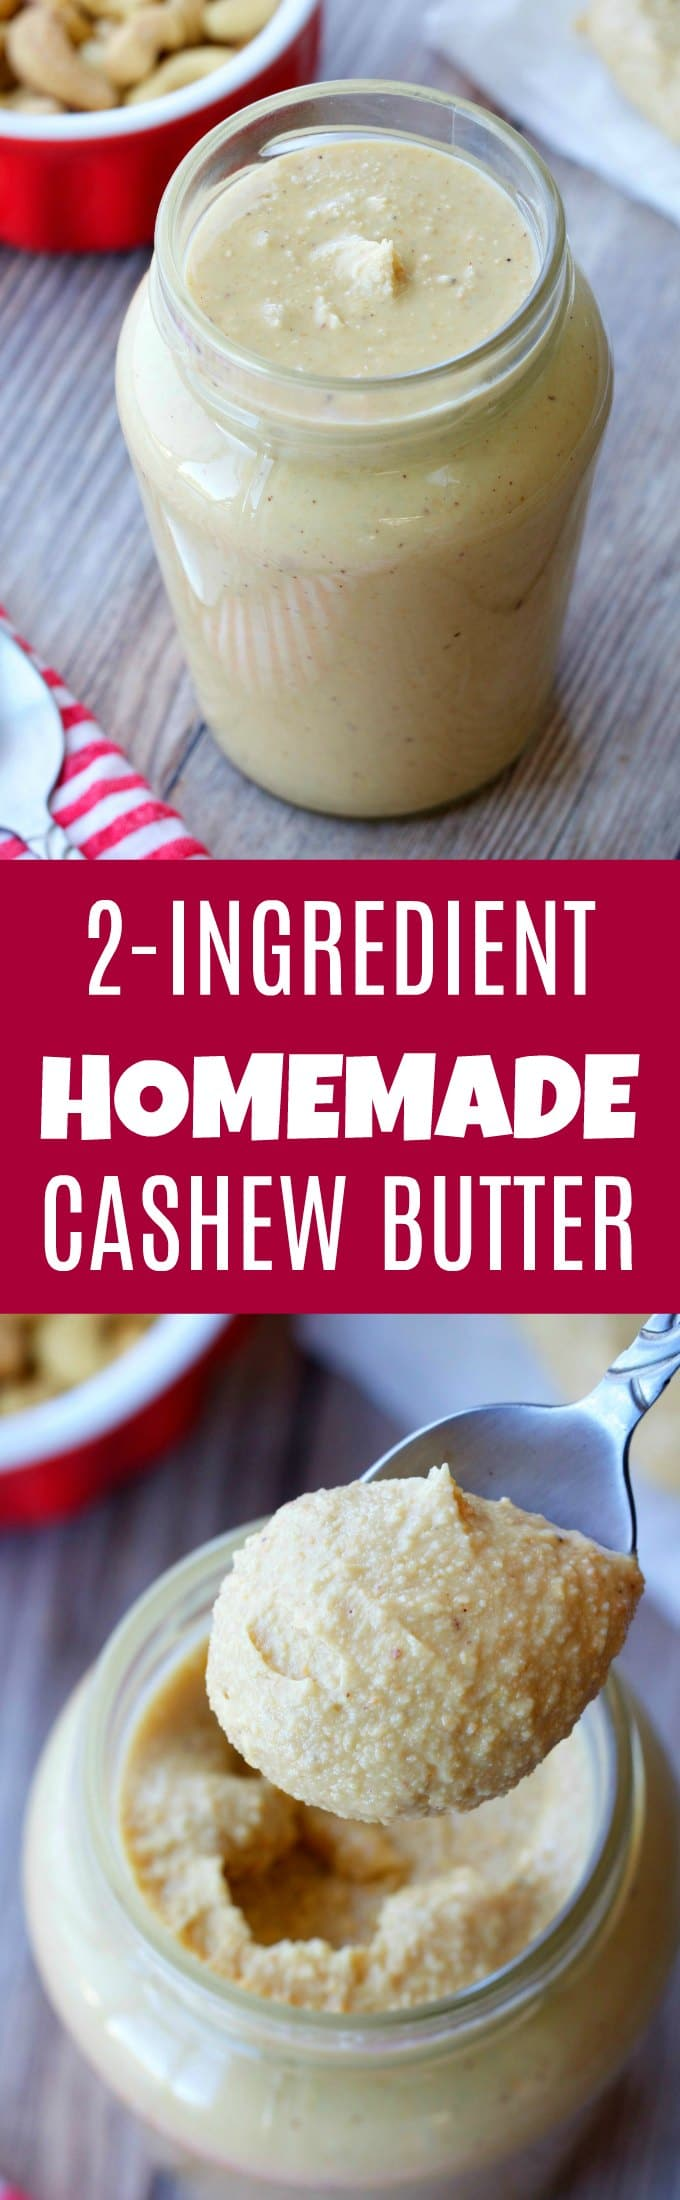 Learn how to make cashew butter with this easy 2-ingredient recipe. Rich, creamy and smooth homemade cashew butter, ready in 10 minutes. Vegan and Gluten-Free | lovingitvegan.com